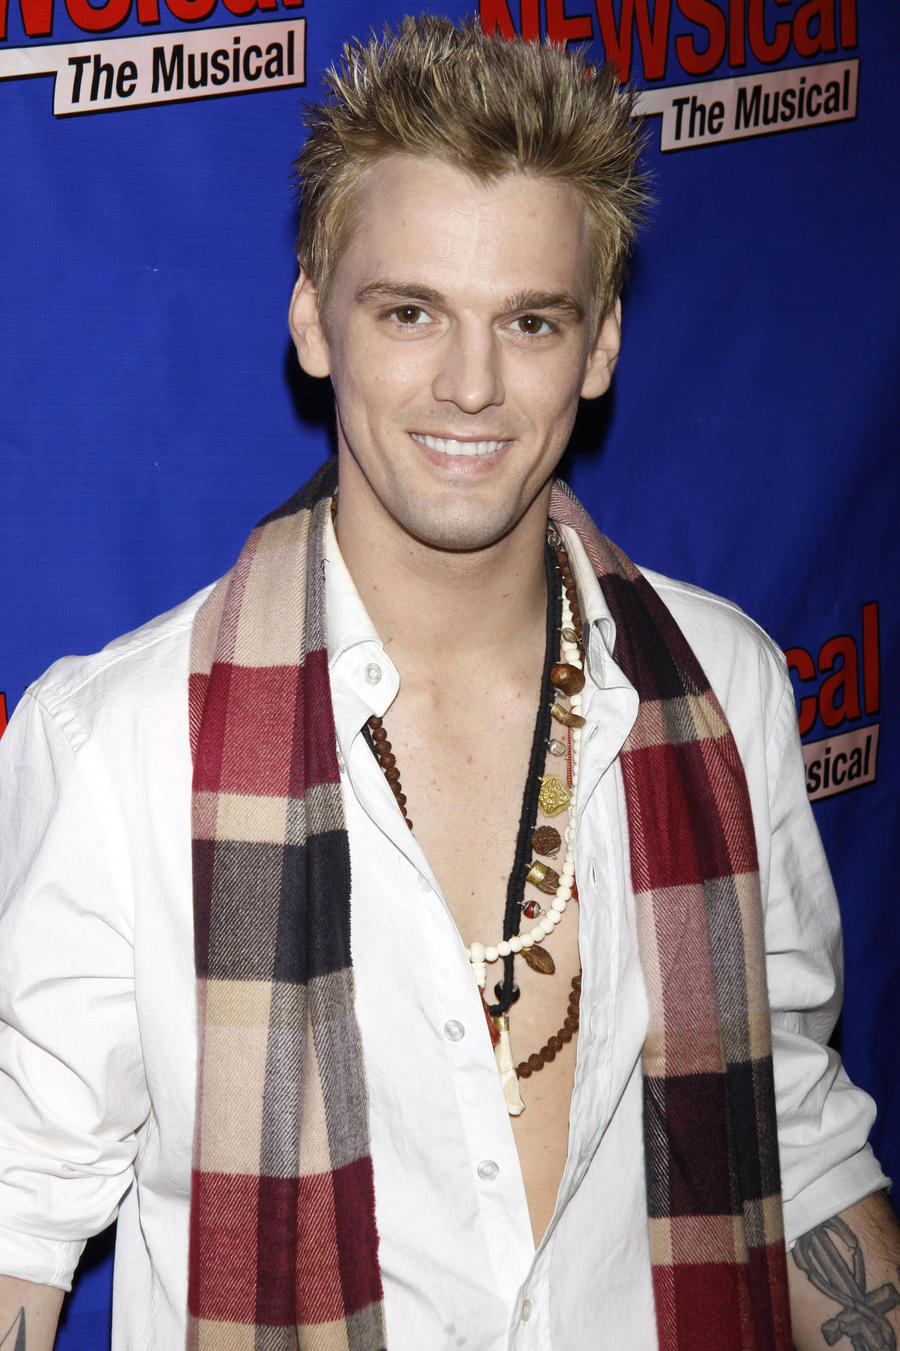 Aaron Carter Endorses Donald Trump, Faces Twitter Backlash